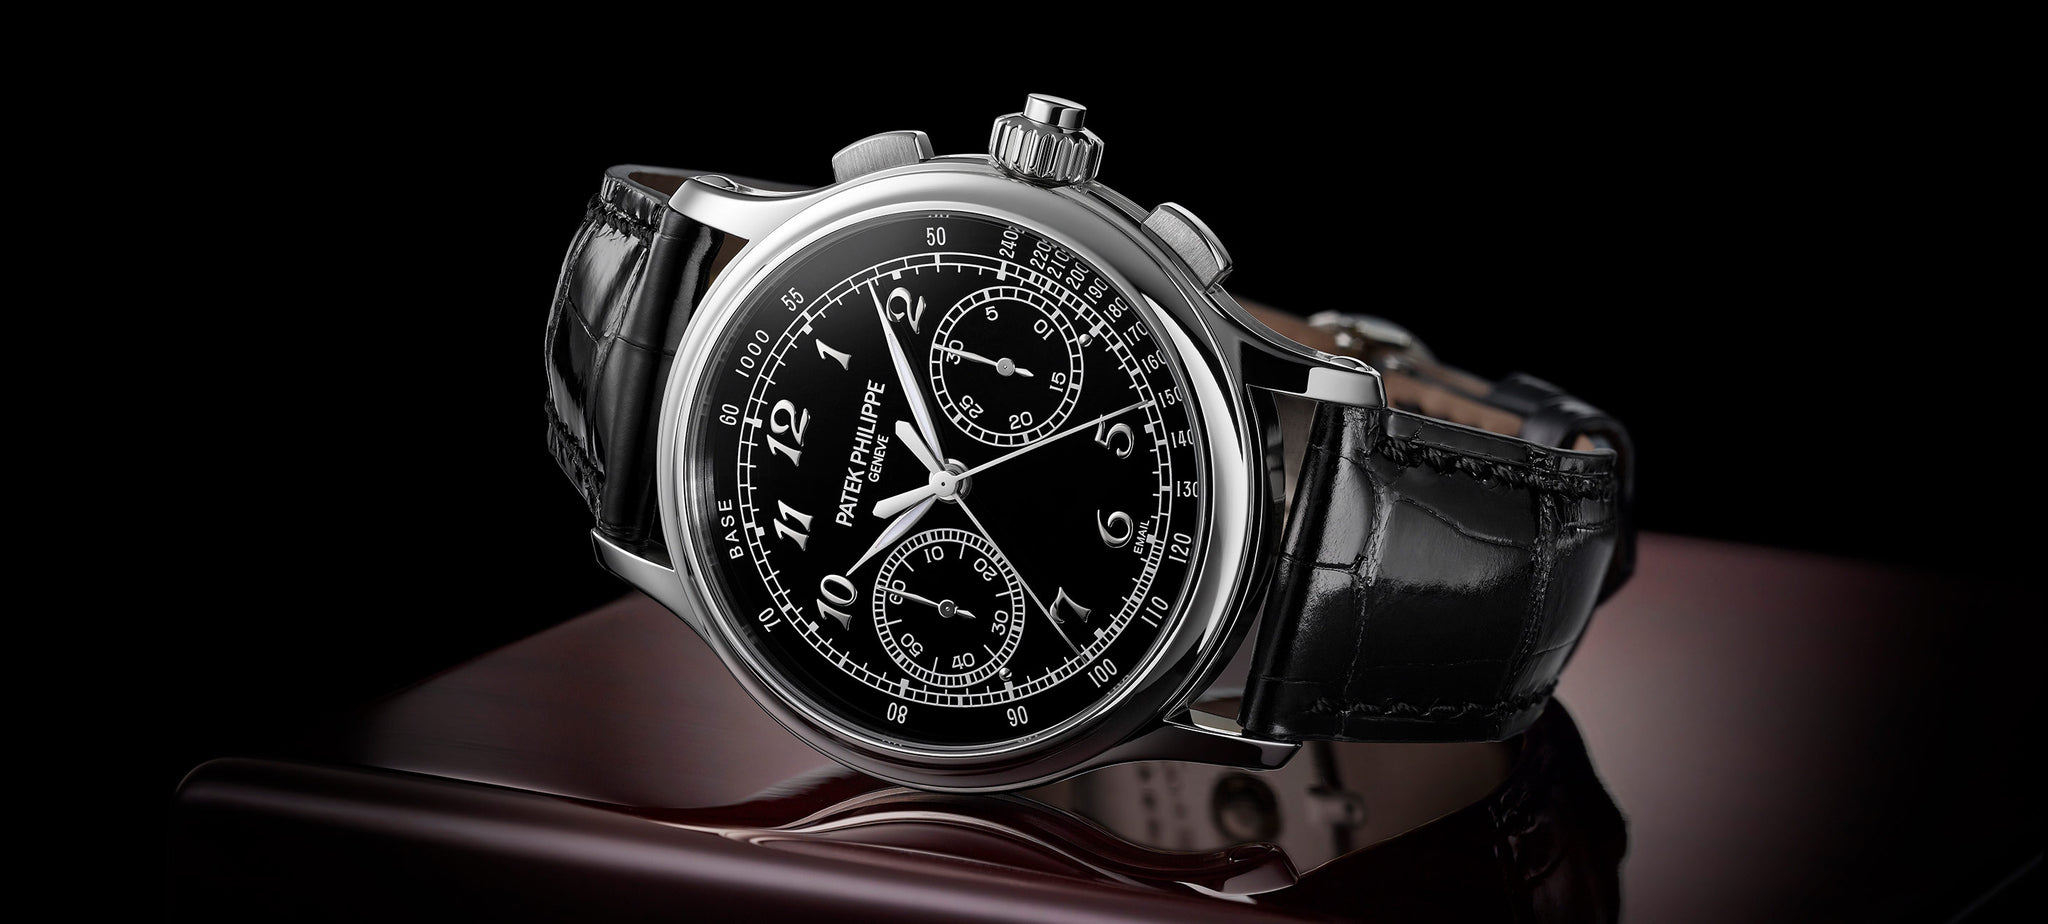 Patek Philippe collections